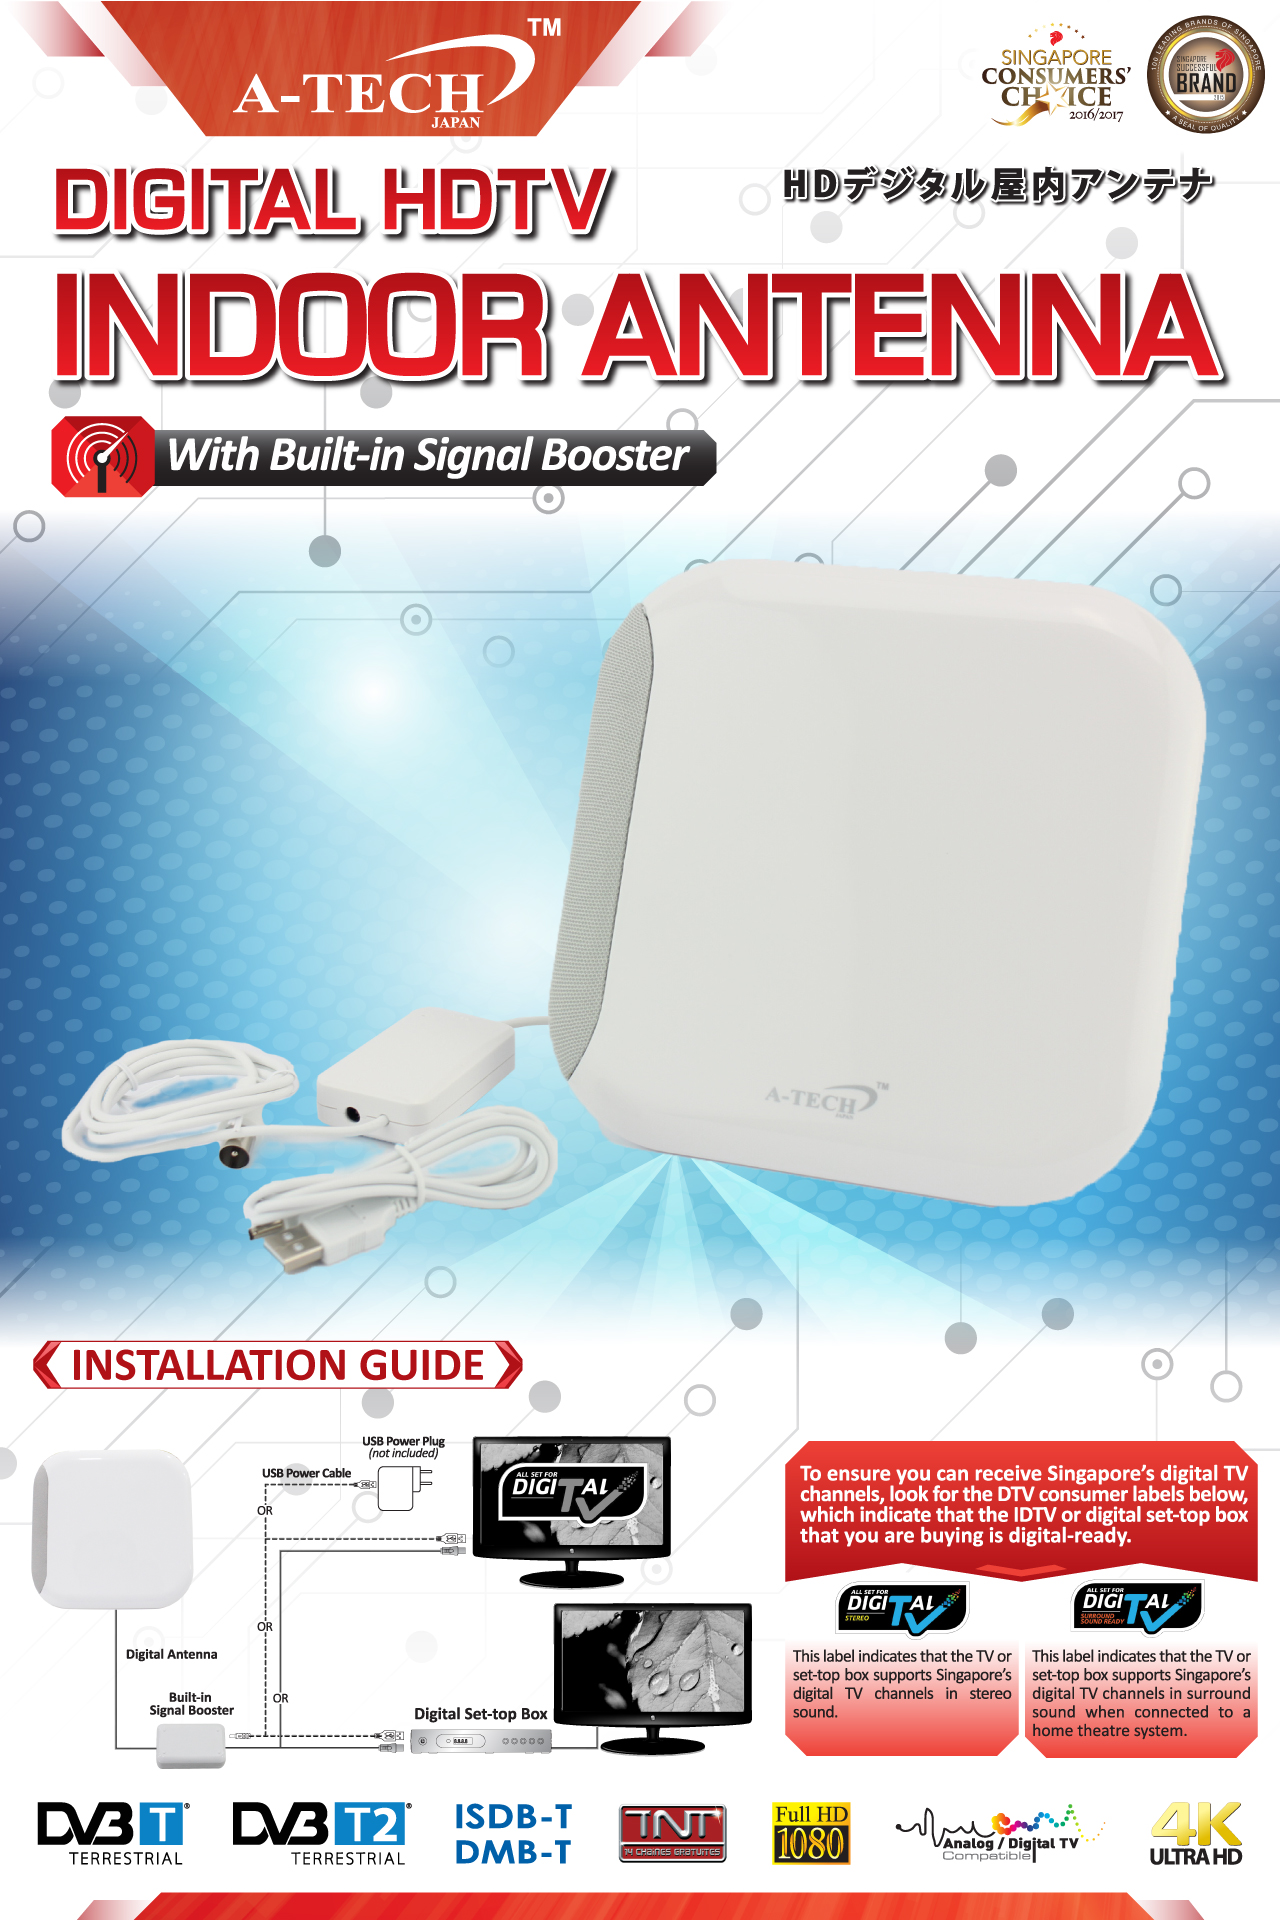 DIGITAL HDTV INDOOR ANTENNA WITH BUILT-IN SIGNAL BOOSTER - A